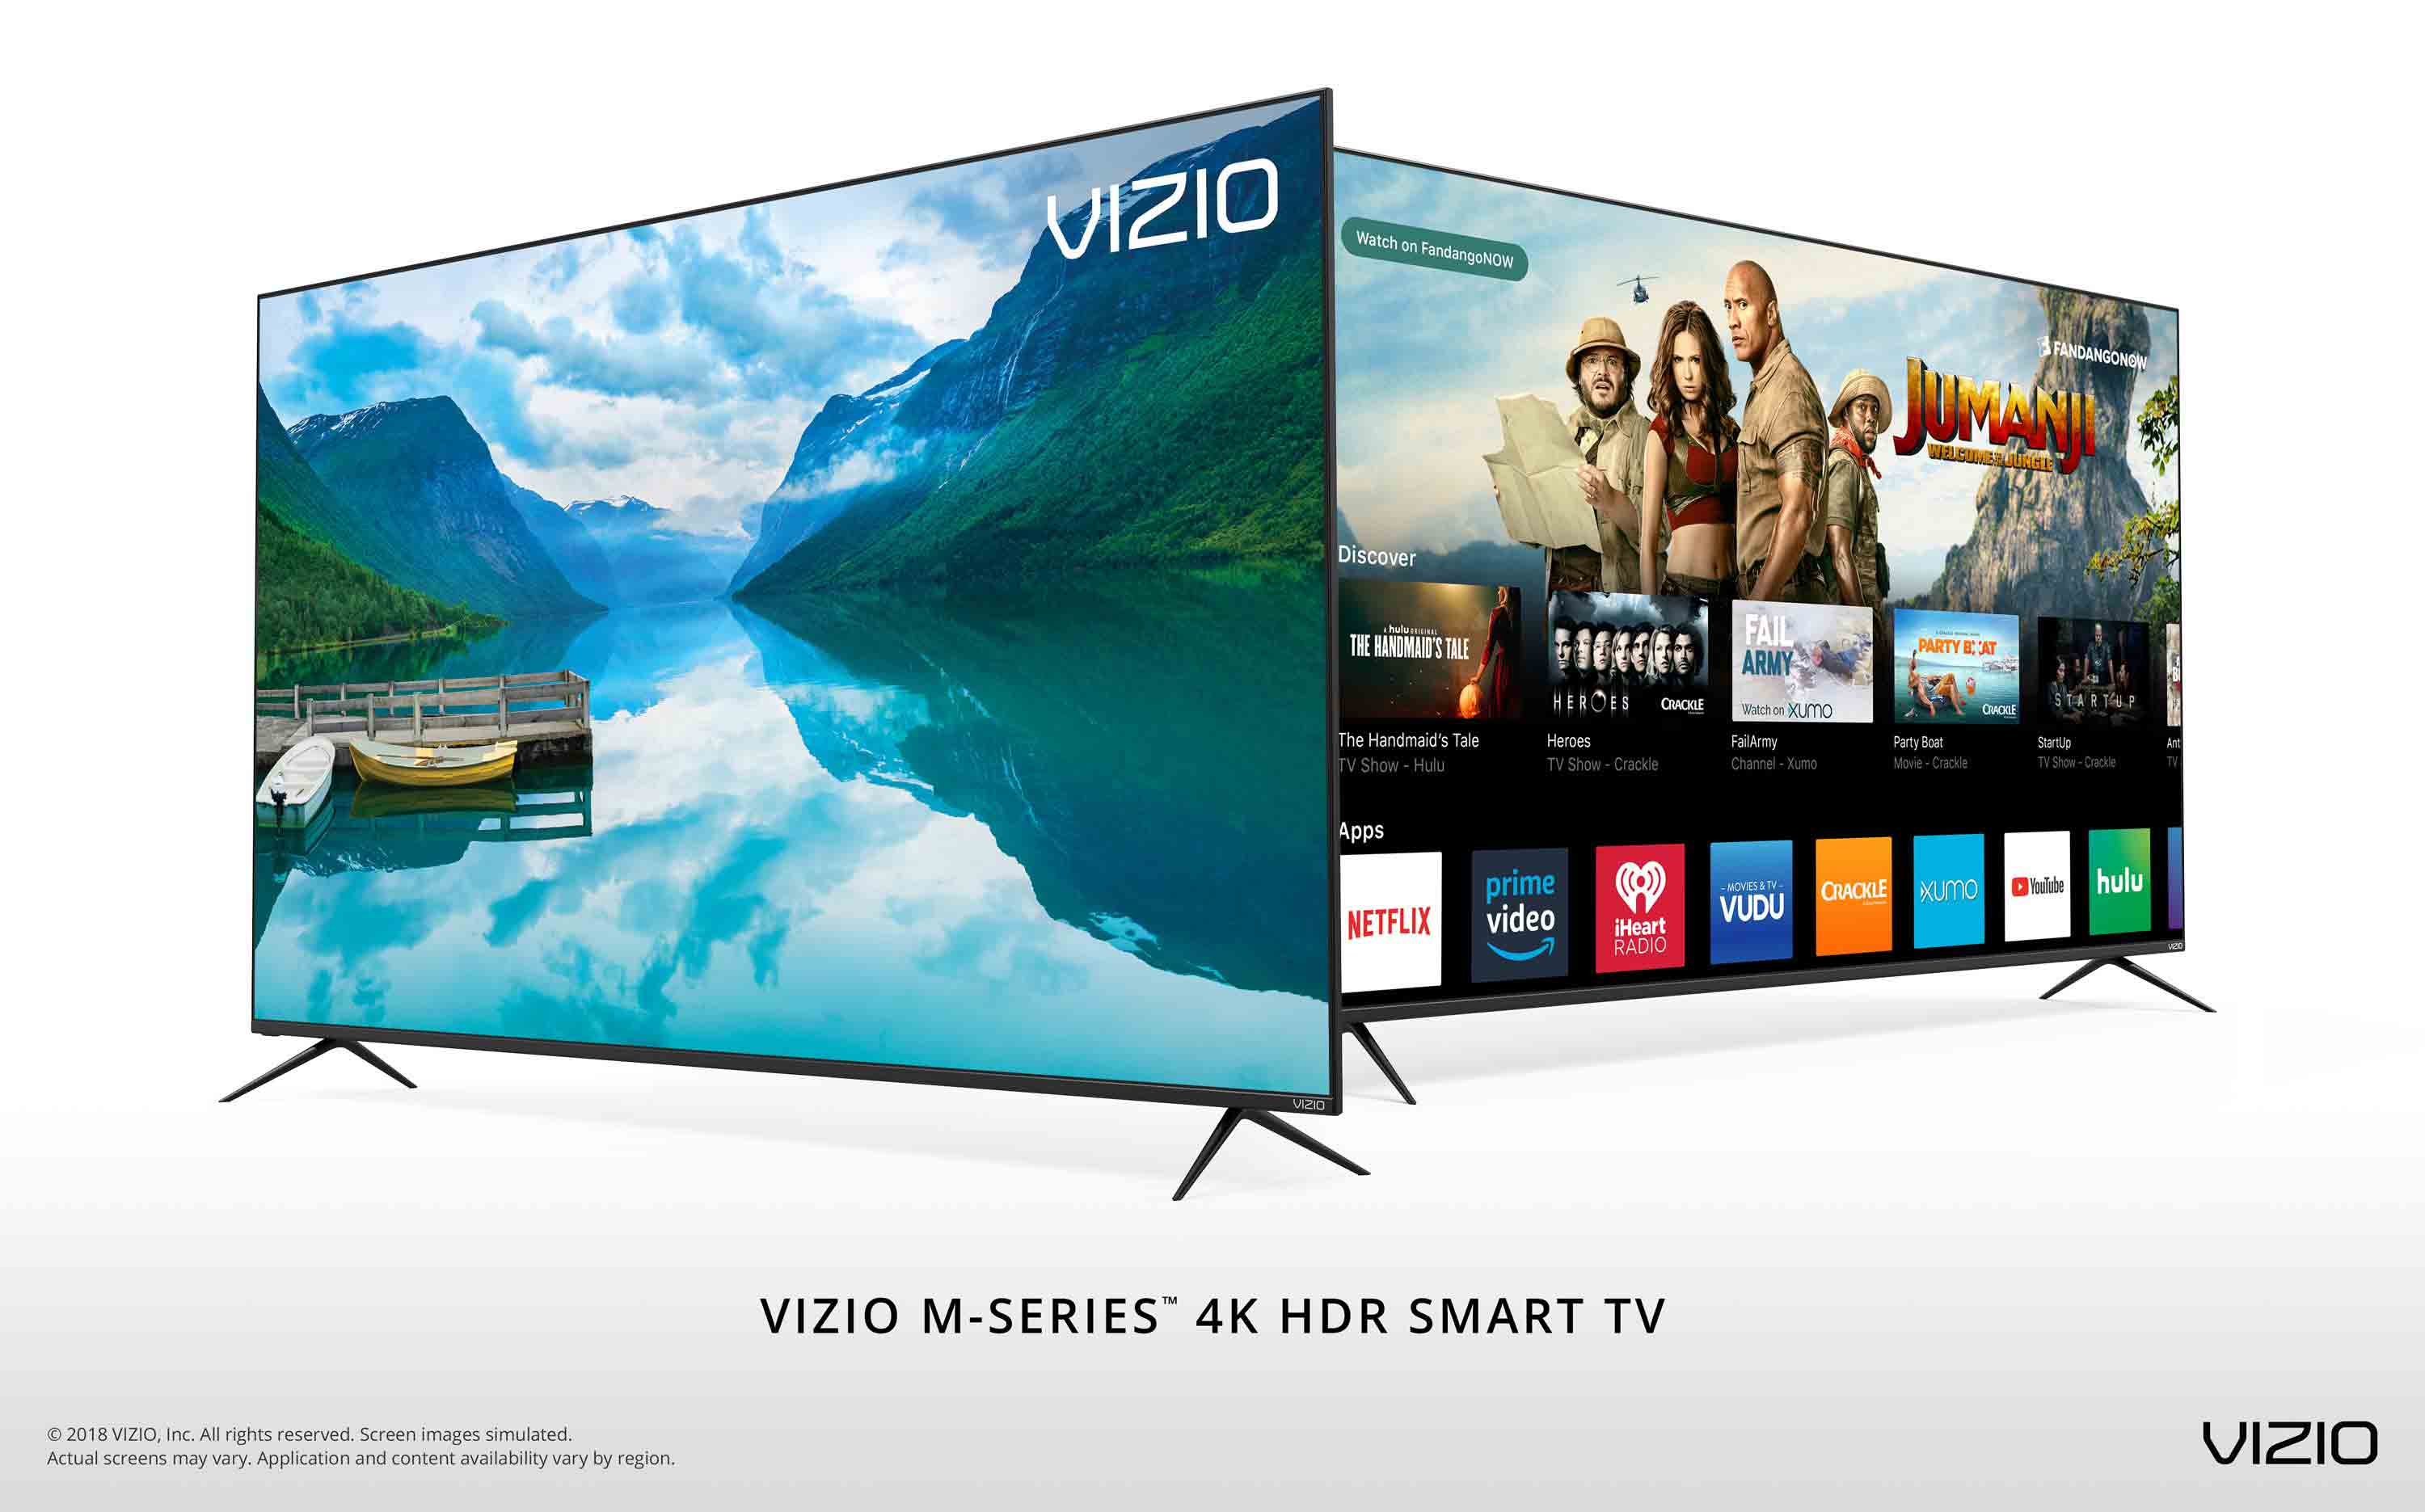 vizio launches all new 2018 m series 4k hdr smart tvs featuring step up picture quality and. Black Bedroom Furniture Sets. Home Design Ideas